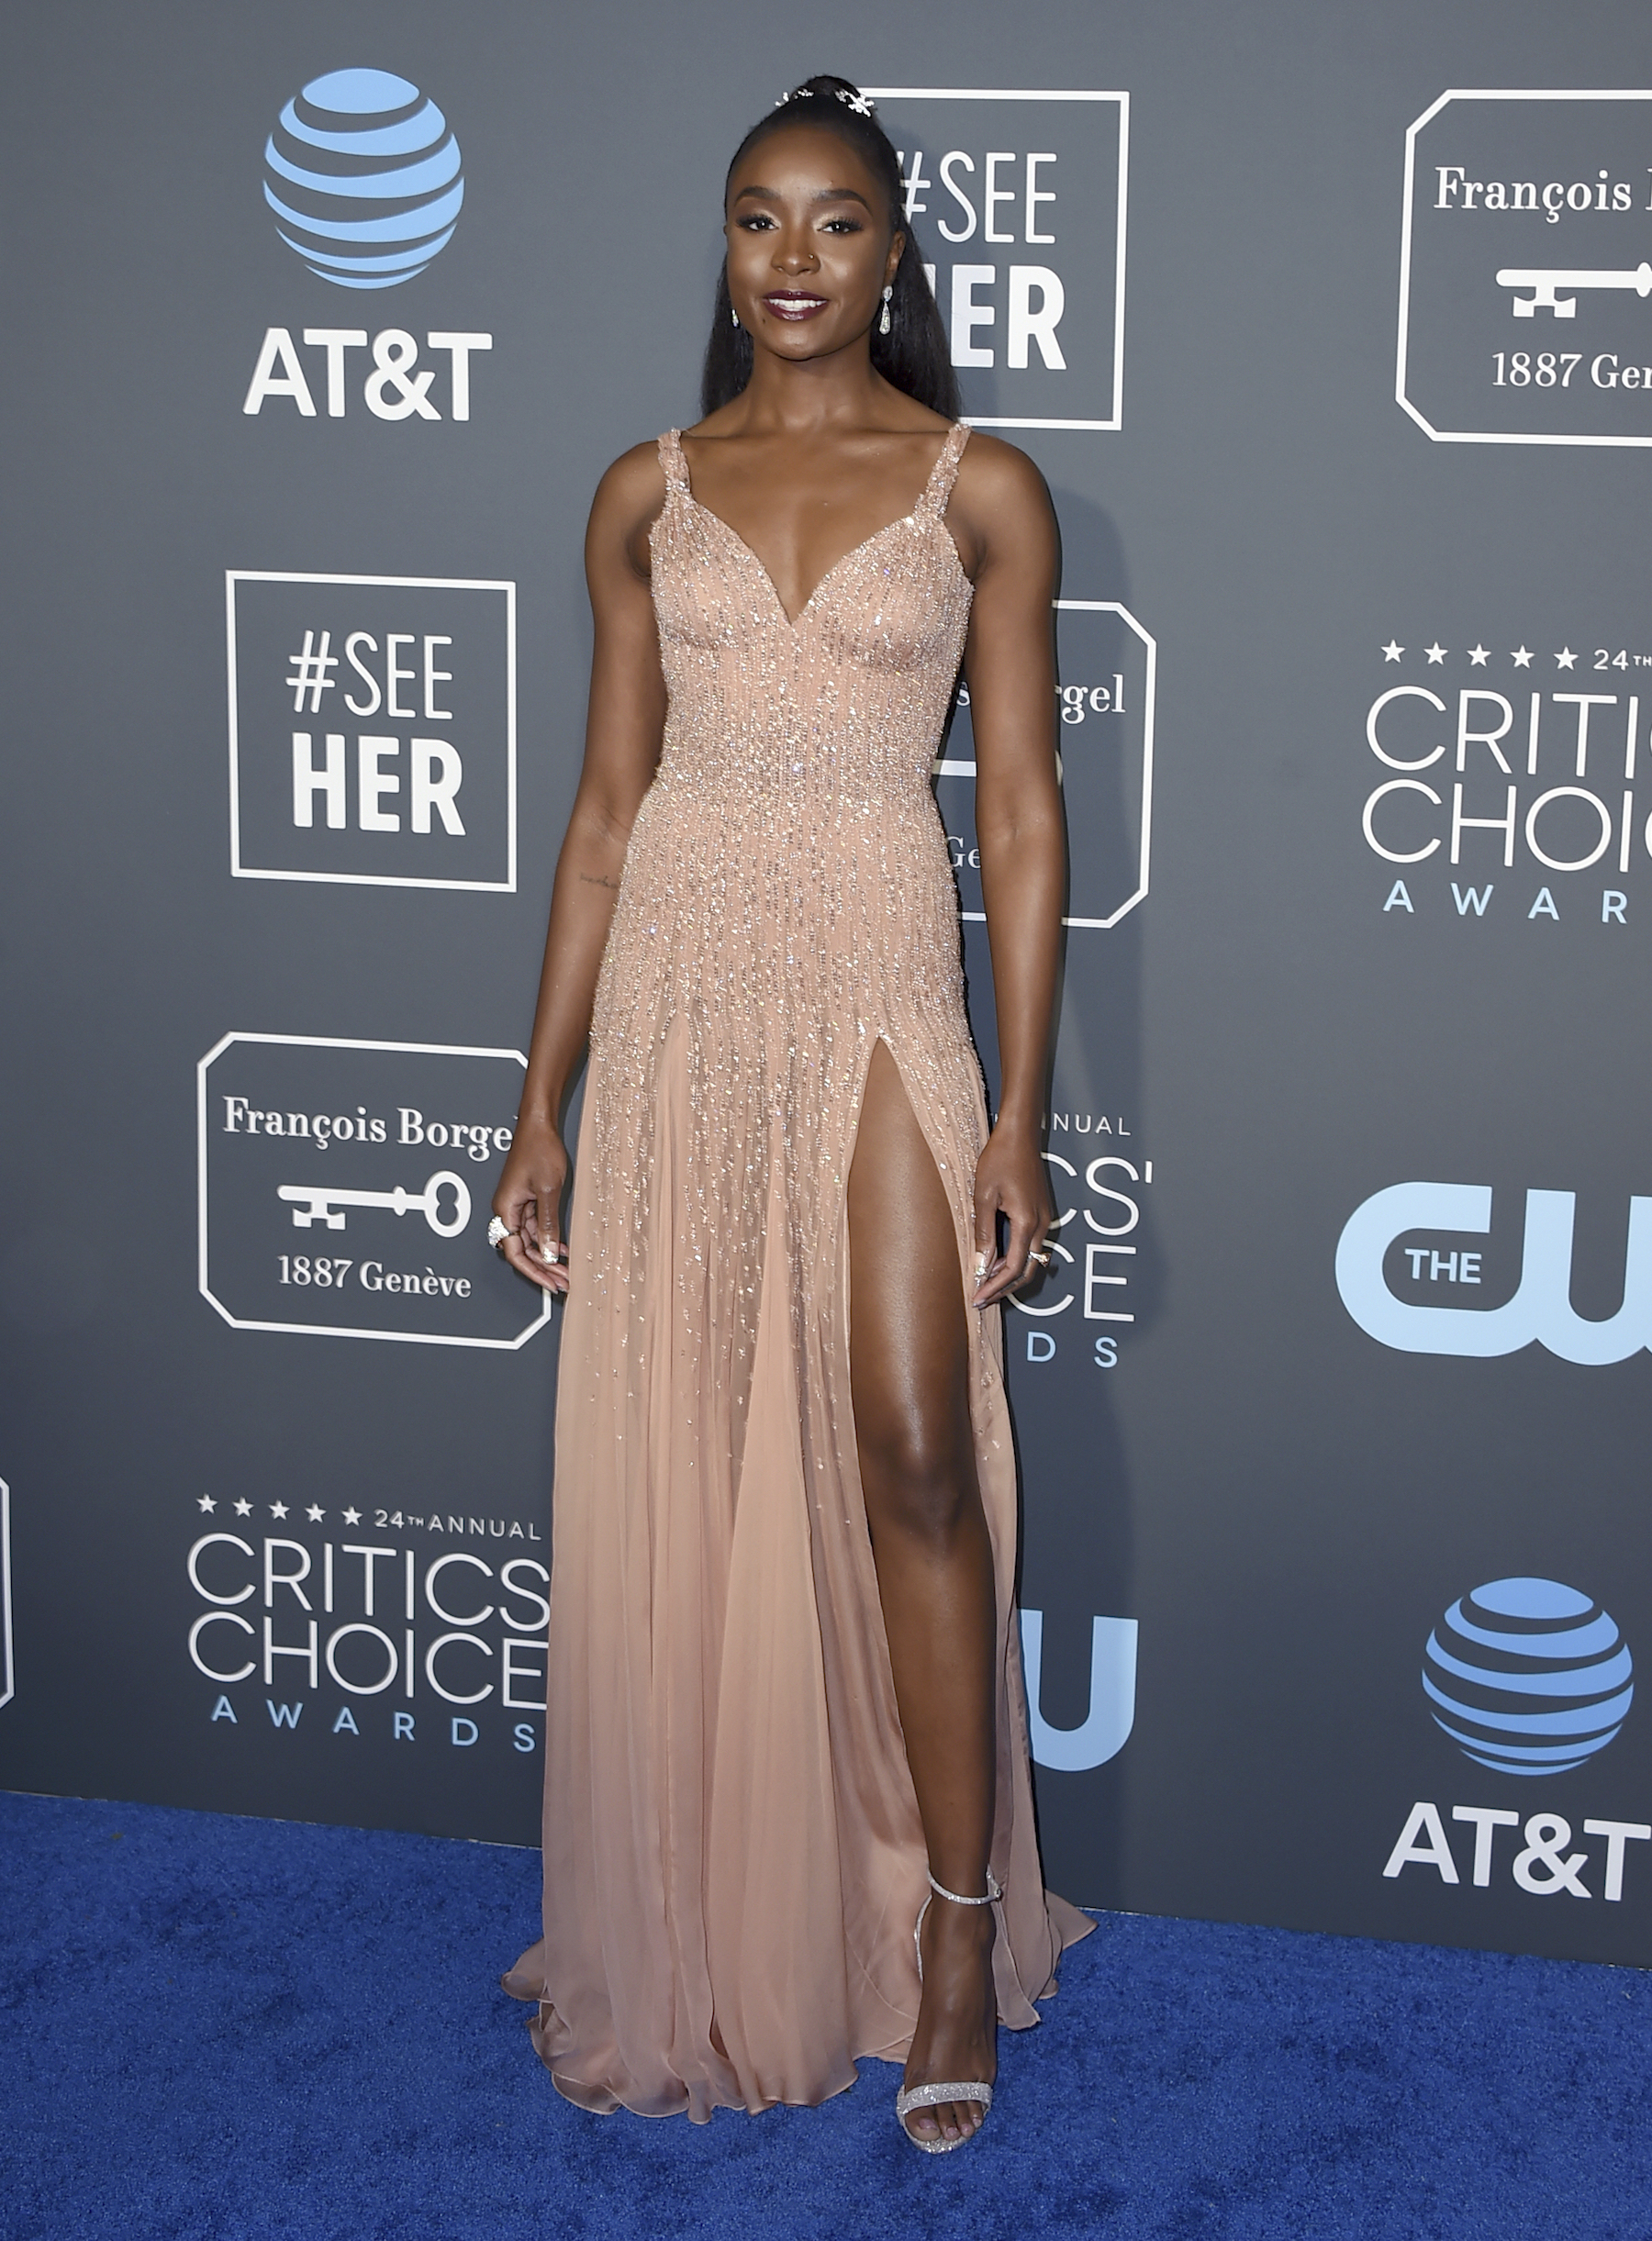 "<div class=""meta image-caption""><div class=""origin-logo origin-image ap""><span>AP</span></div><span class=""caption-text"">KiKi Layne arrives at the 24th annual Critics' Choice Awards on Sunday, Jan. 13, 2019, at the Barker Hangar in Santa Monica, Calif. (Jordan Strauss/Invision/AP)</span></div>"